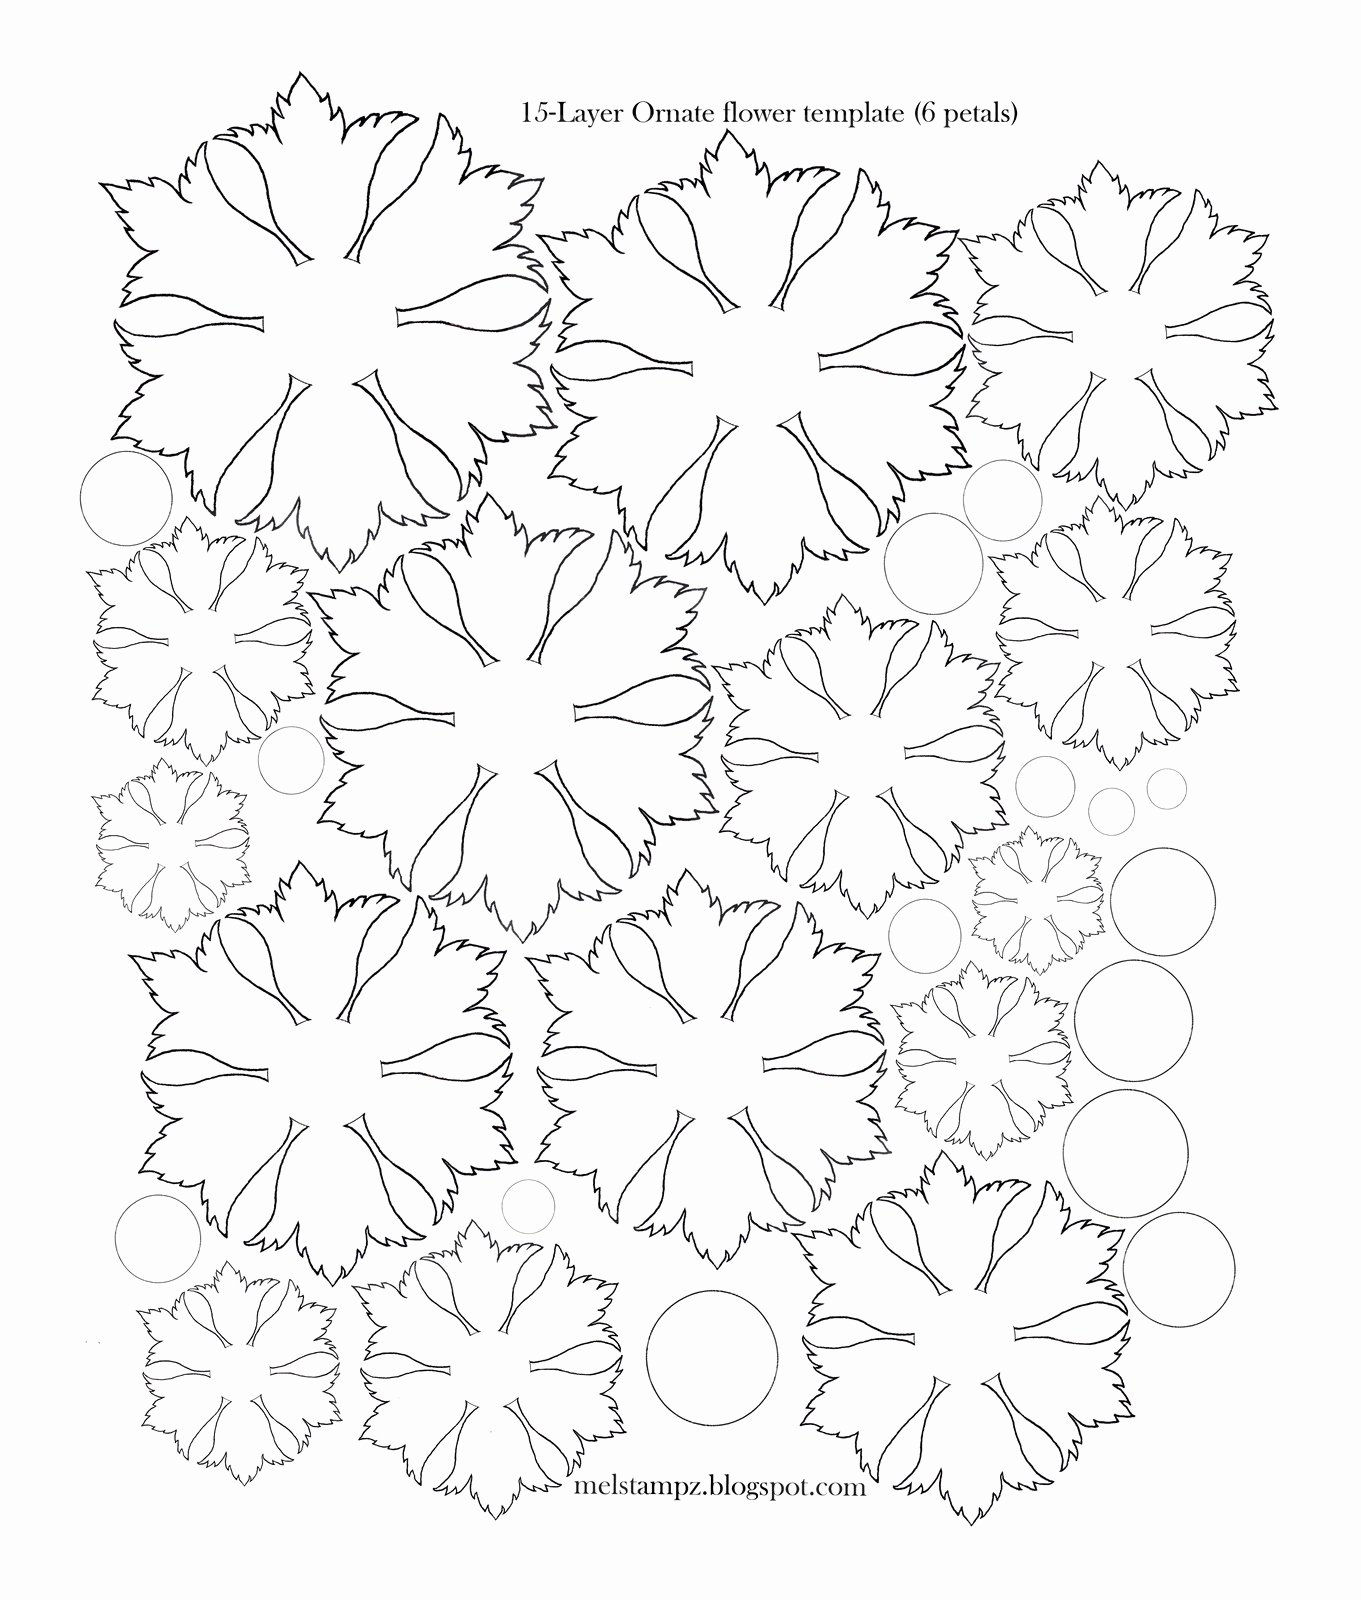 Printable Flower Petal Template Pattern Elegant Mel Stampz 6 Petal ornate Flower Template